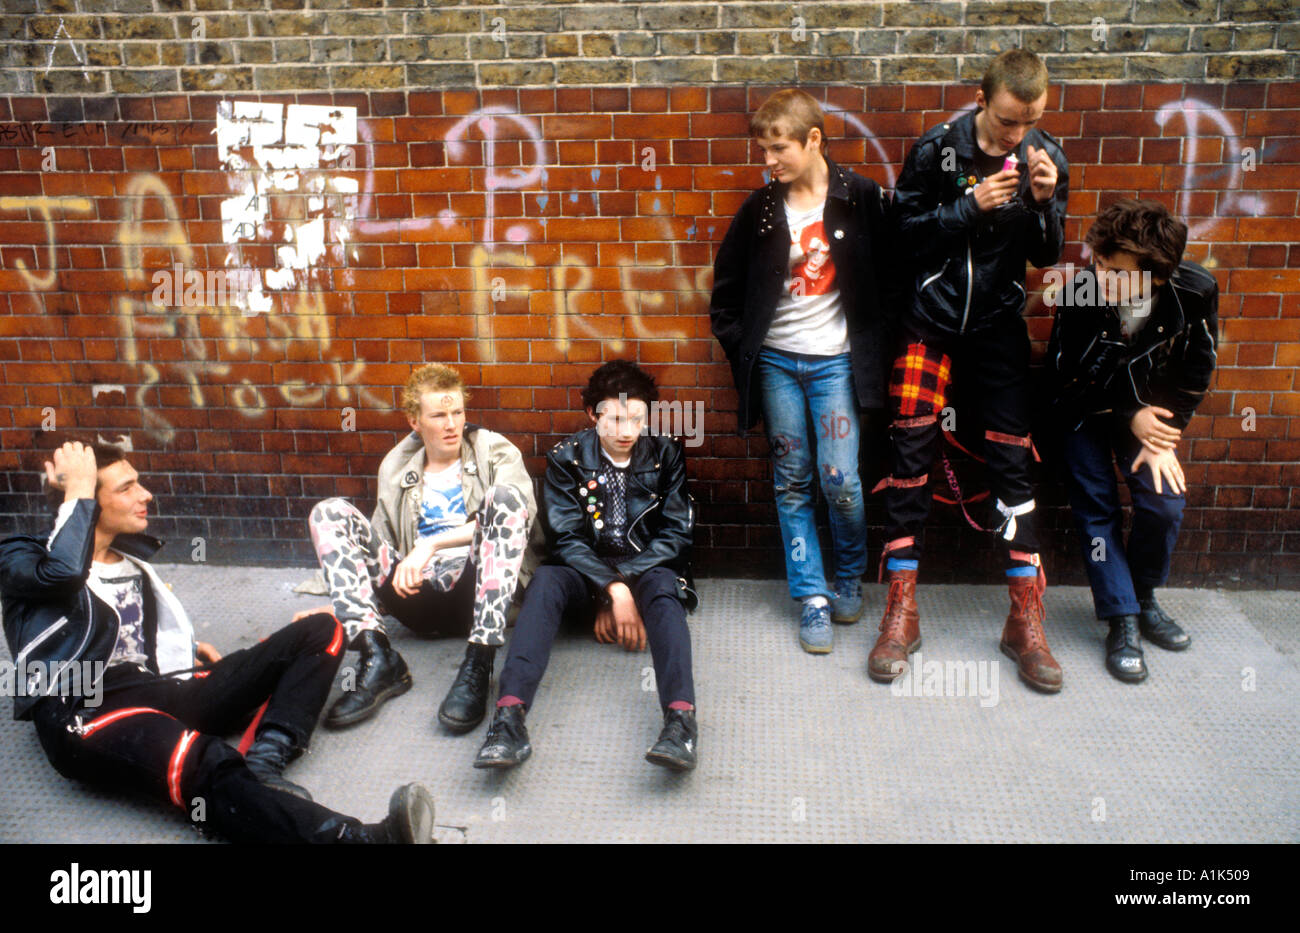 Group of young punk kids glue sniffing  in London. - Stock Image